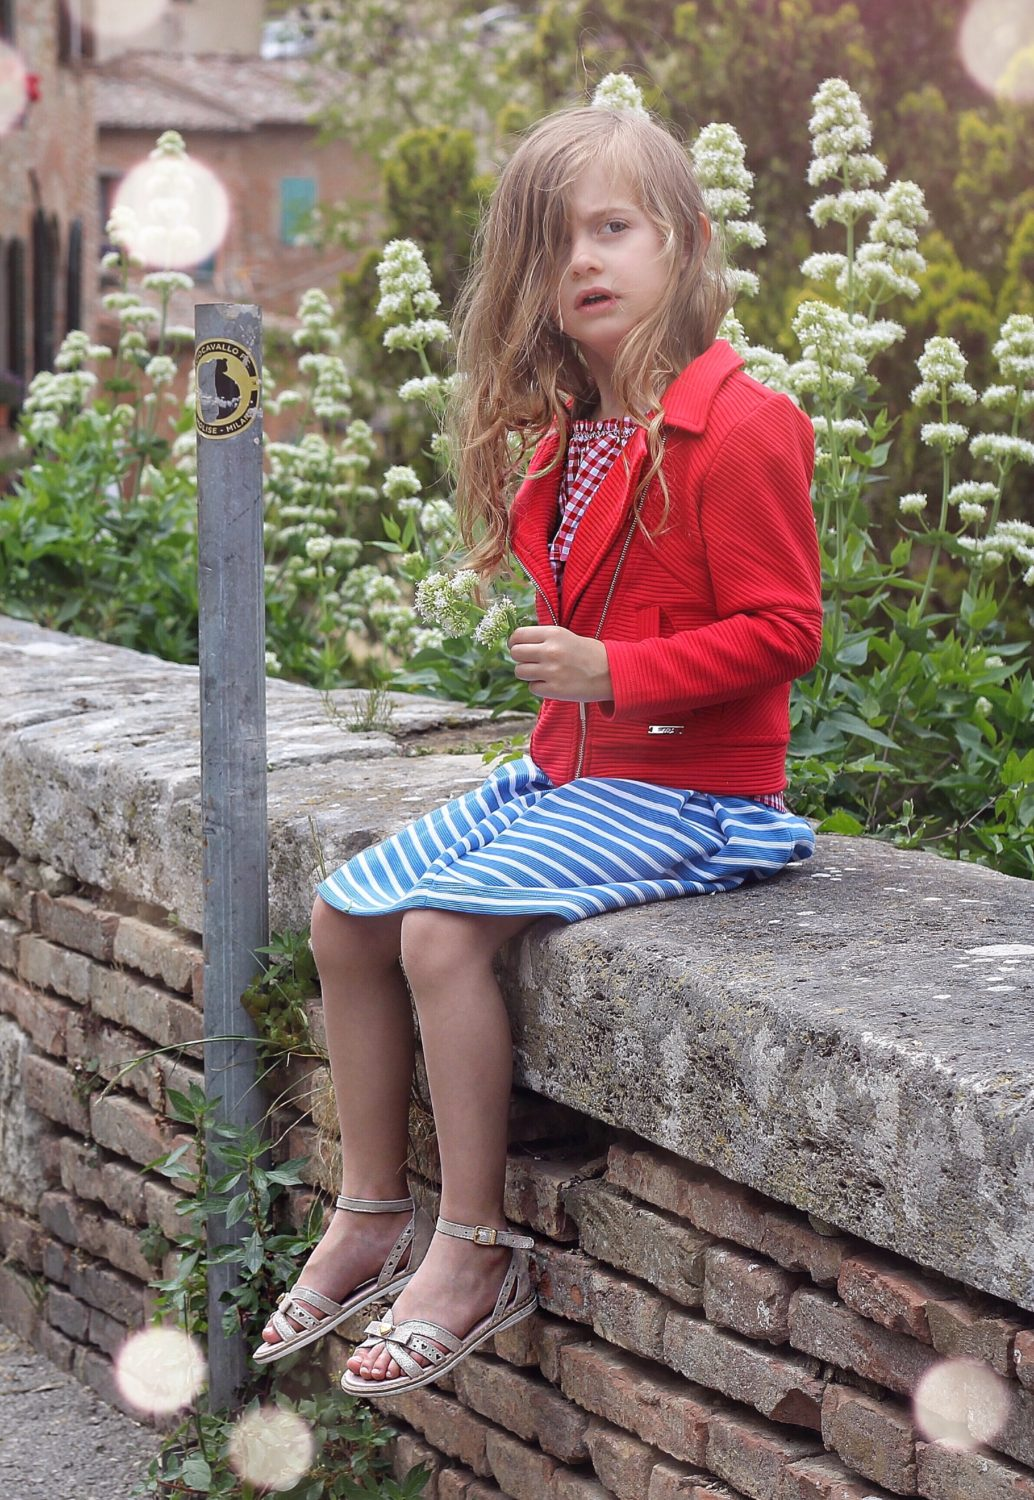 gaia masseroni fashion kids